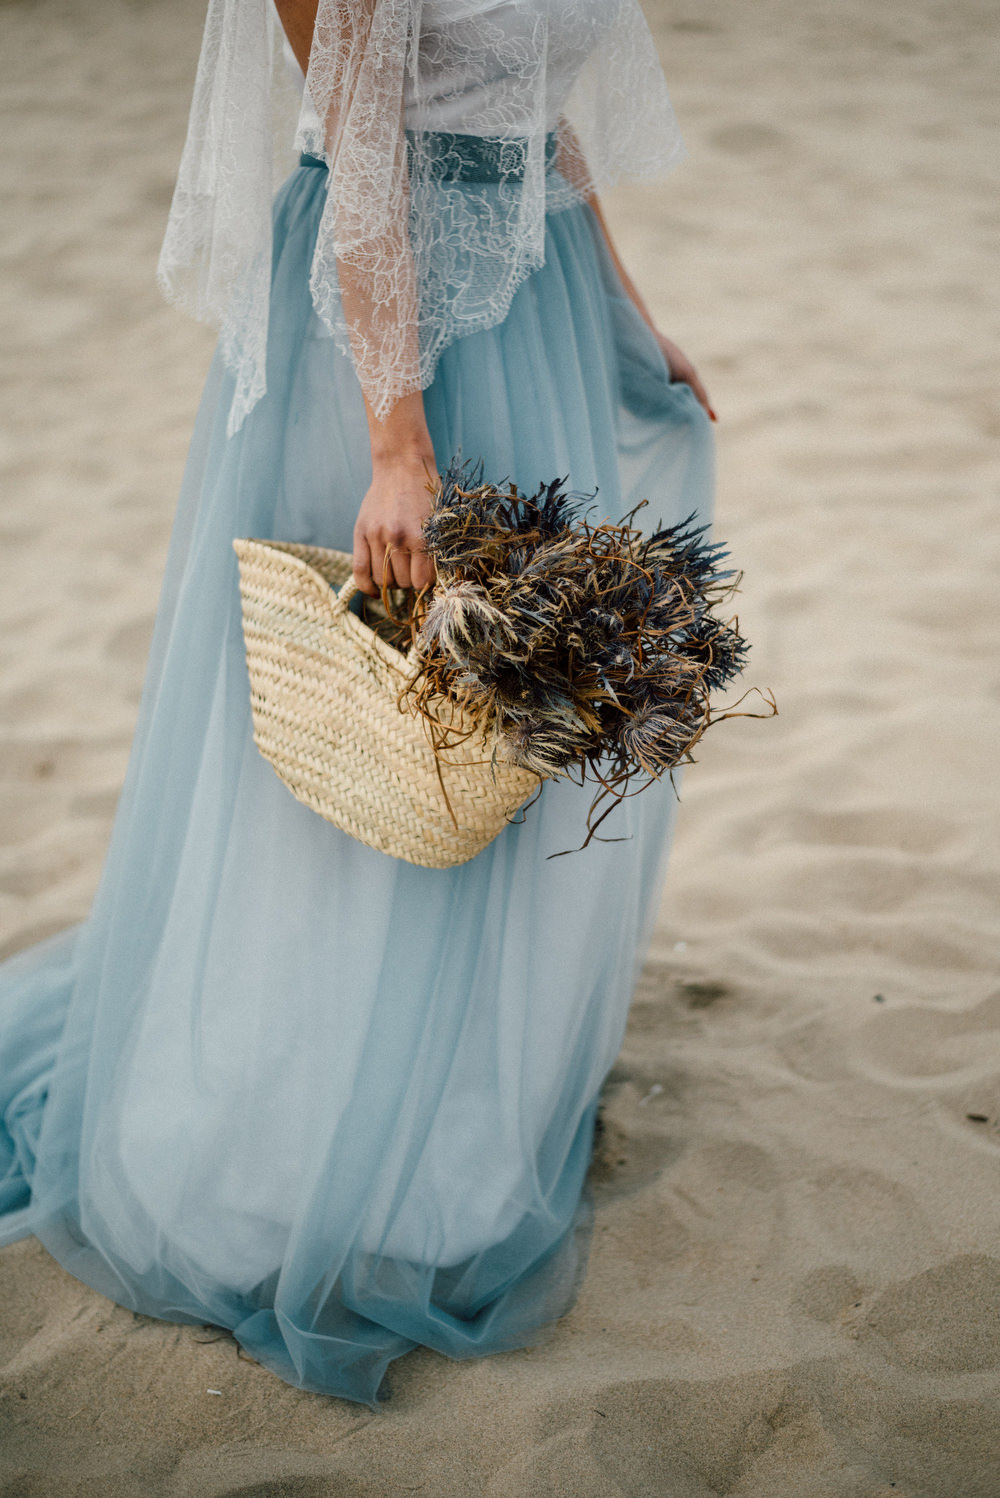 Outdoor Wild Nature Destination Spain Europe Coastal Styled Shoot Bride Blue Gown Lace Sea Holly | Blue Ibiza Elopement Ideas and Surprise Proposal Serena Genovese Photography